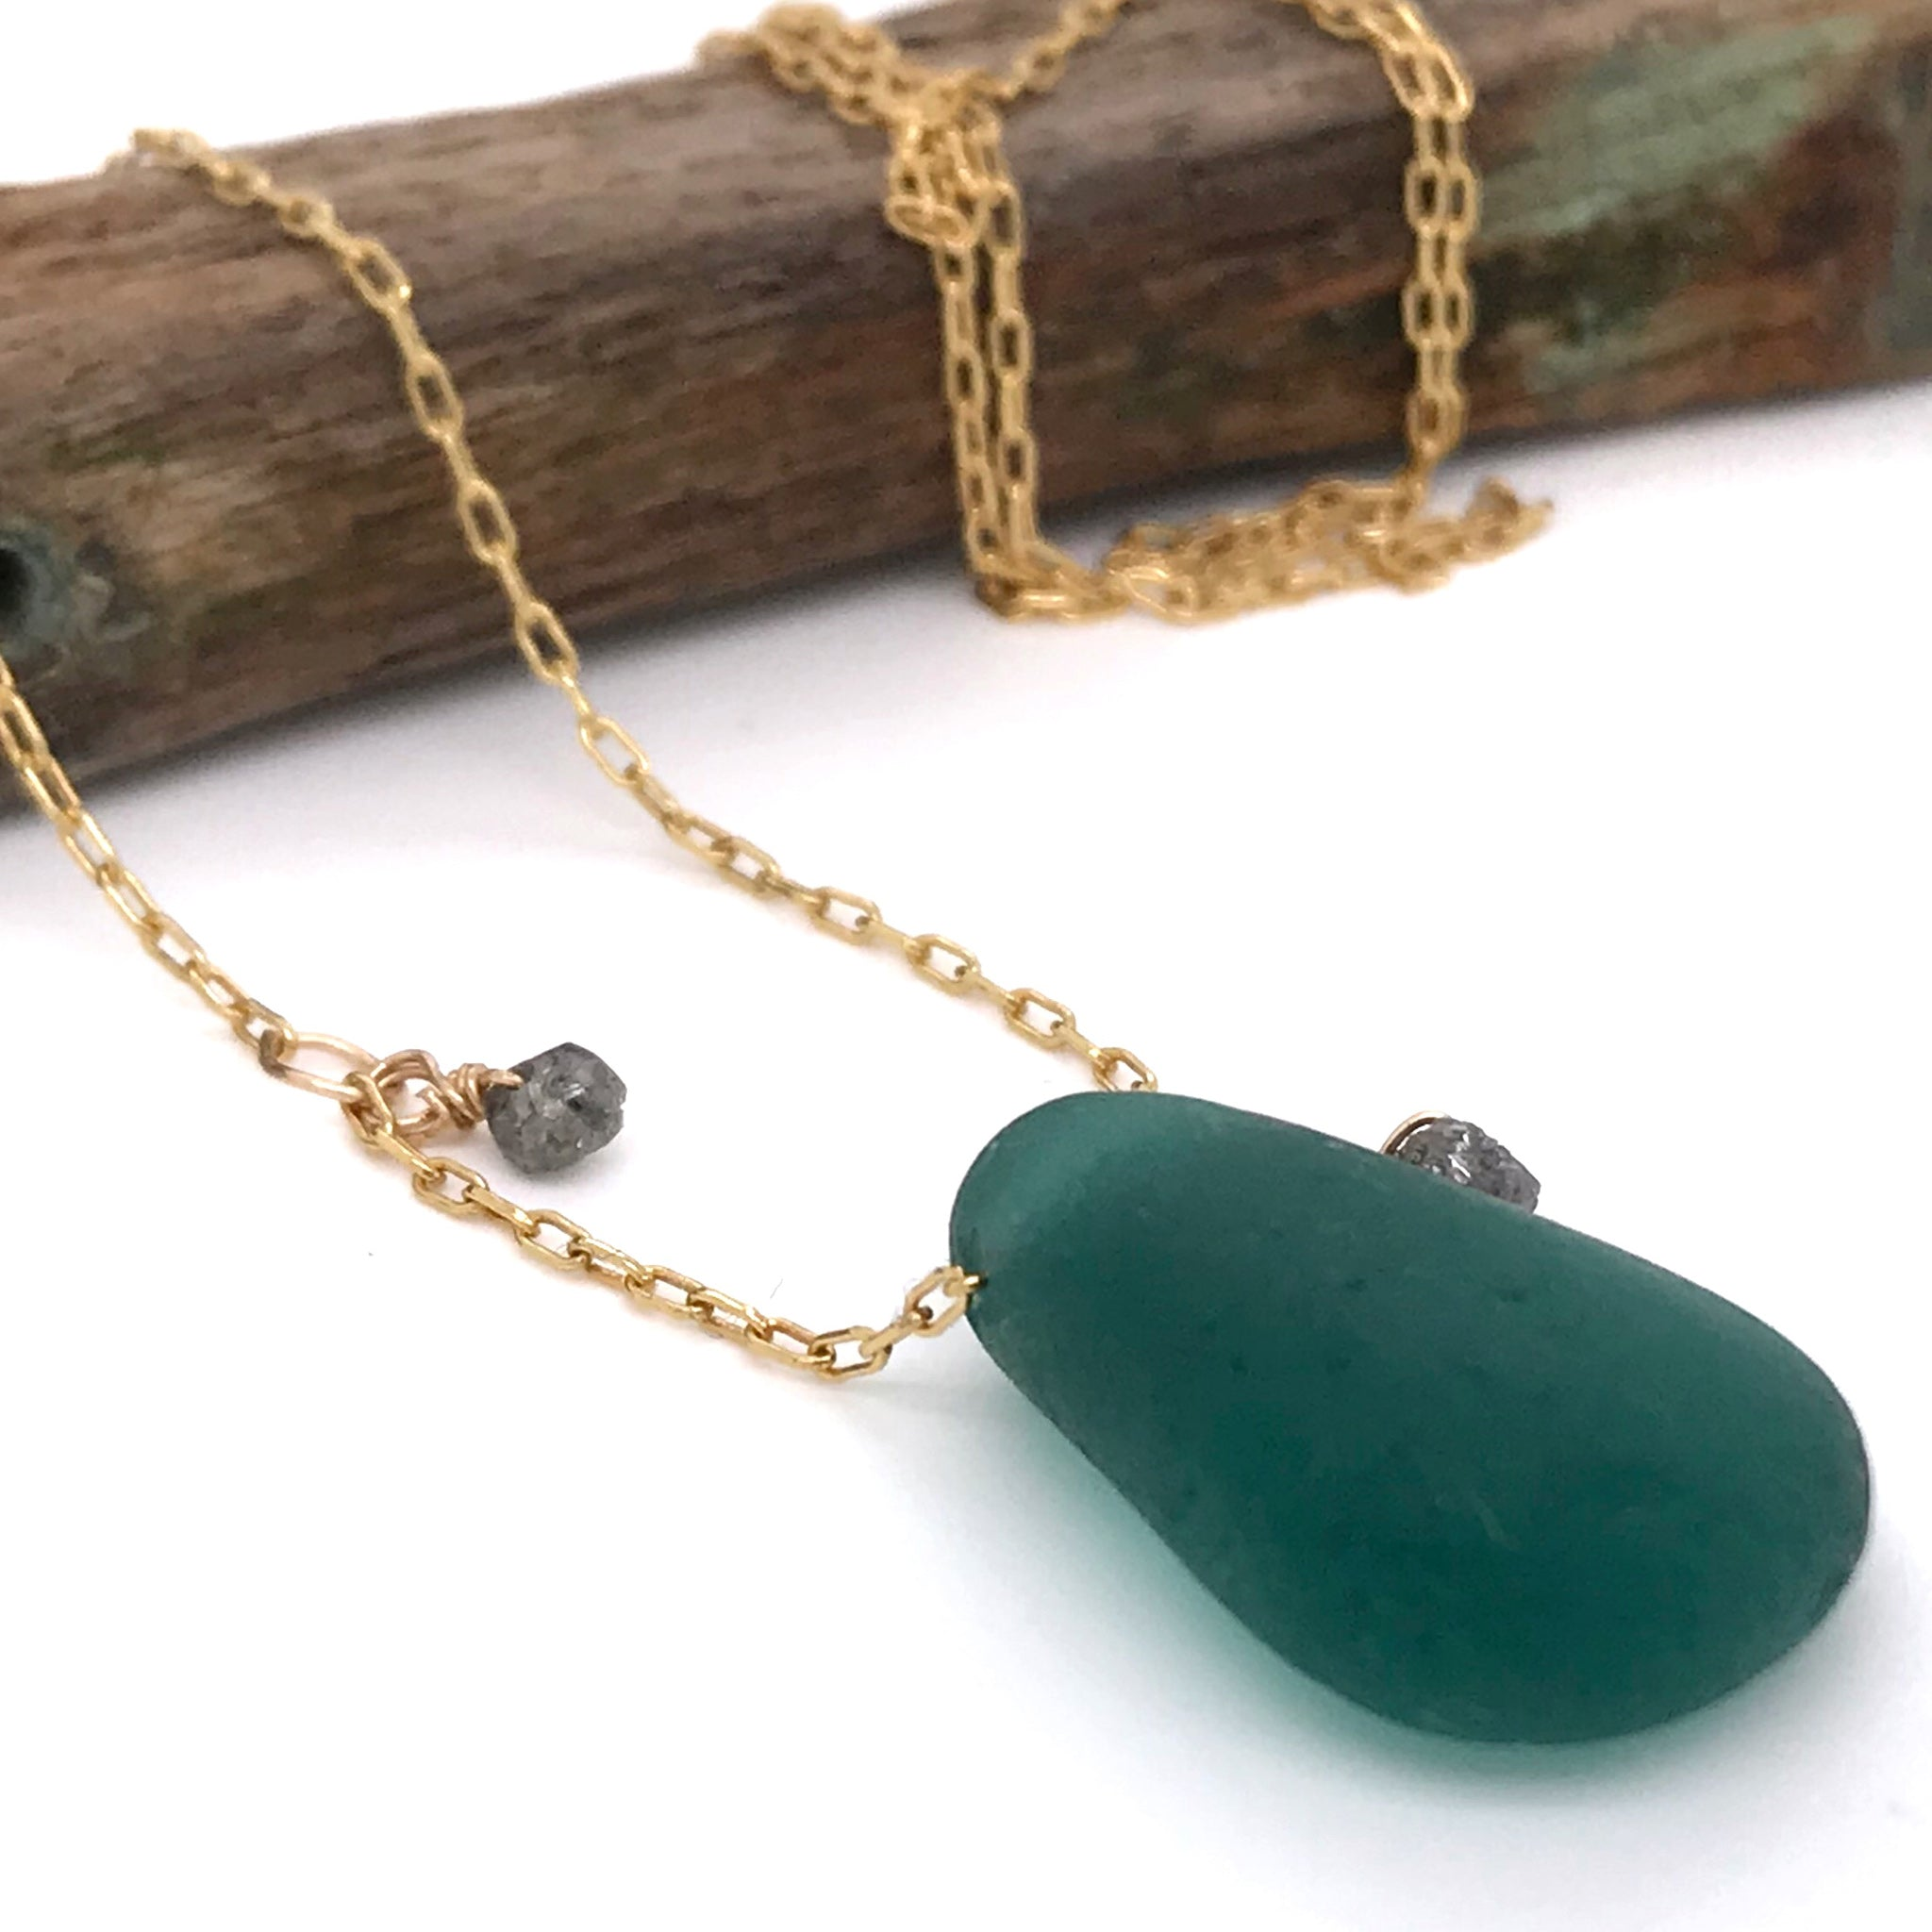 emerald green sea glass on gold necklace with rough cut diamonds Kriket Broadhurst gifts for women Sydney